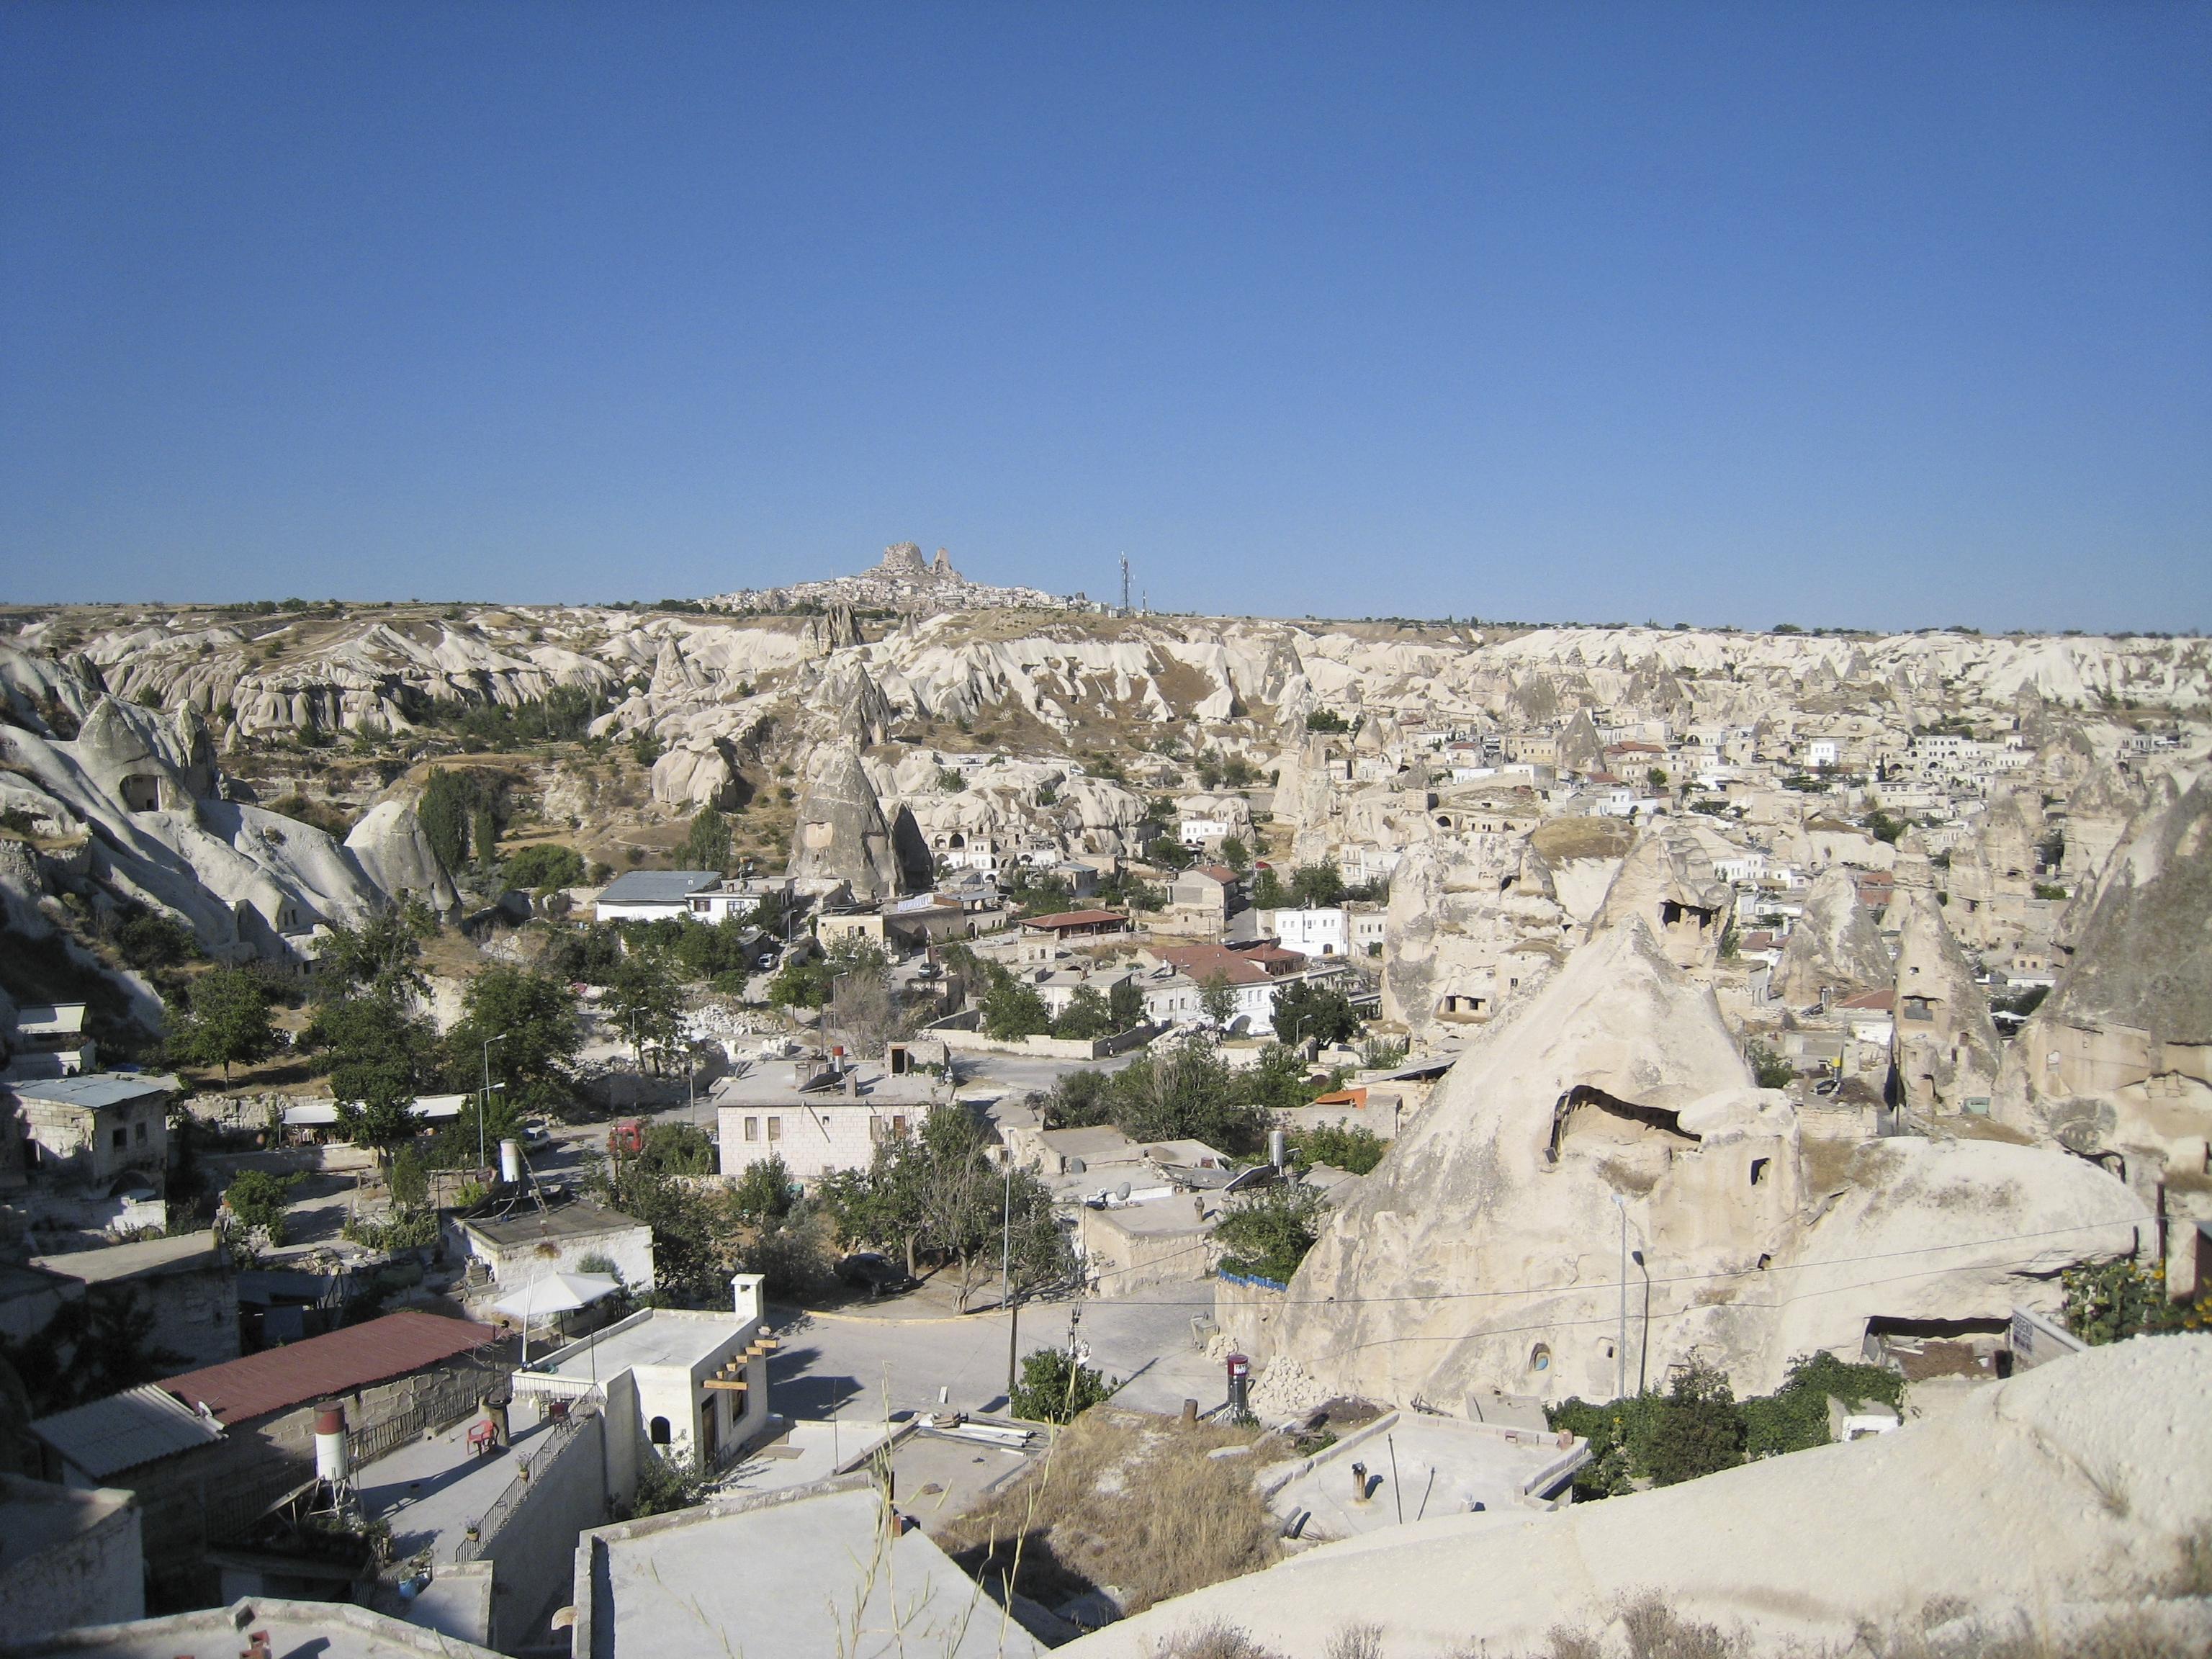 Fairy chimney rock formations, Goreme, Cappadocia Turkey 24.jpg - Goreme, Cappadocia, Turkey